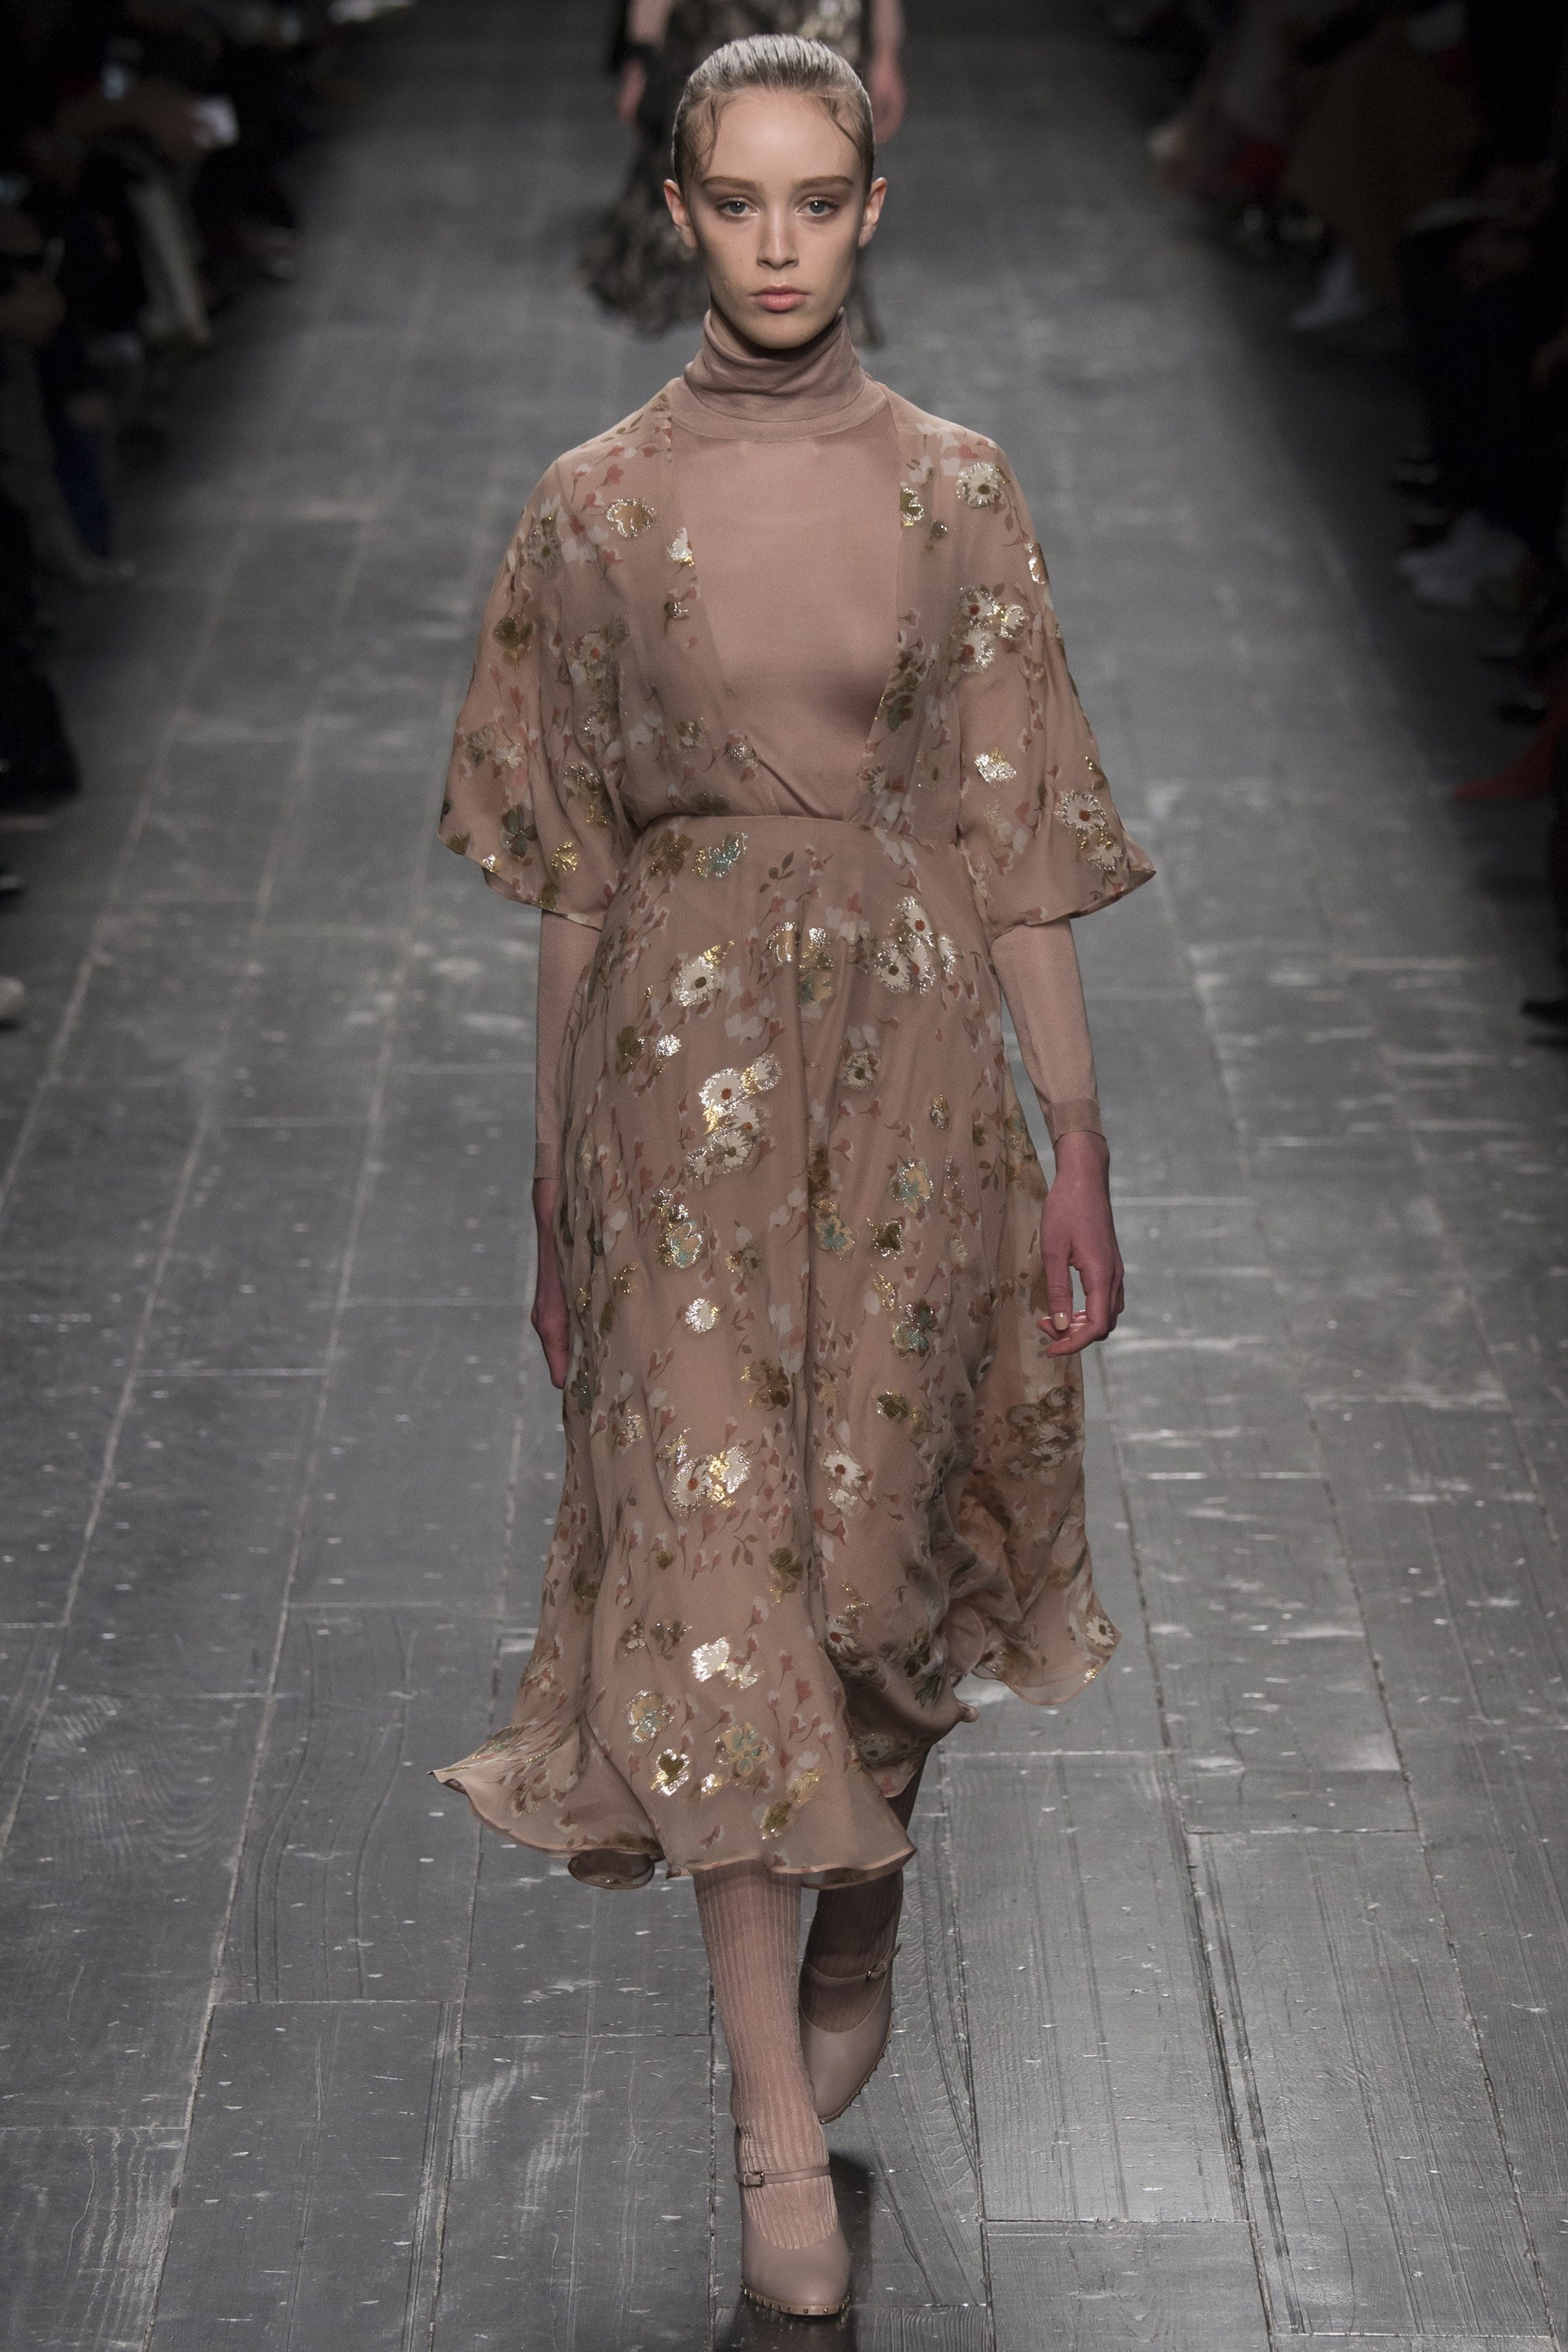 Valentino Fall 2016 Rtw Inspired By Ballet And Dance